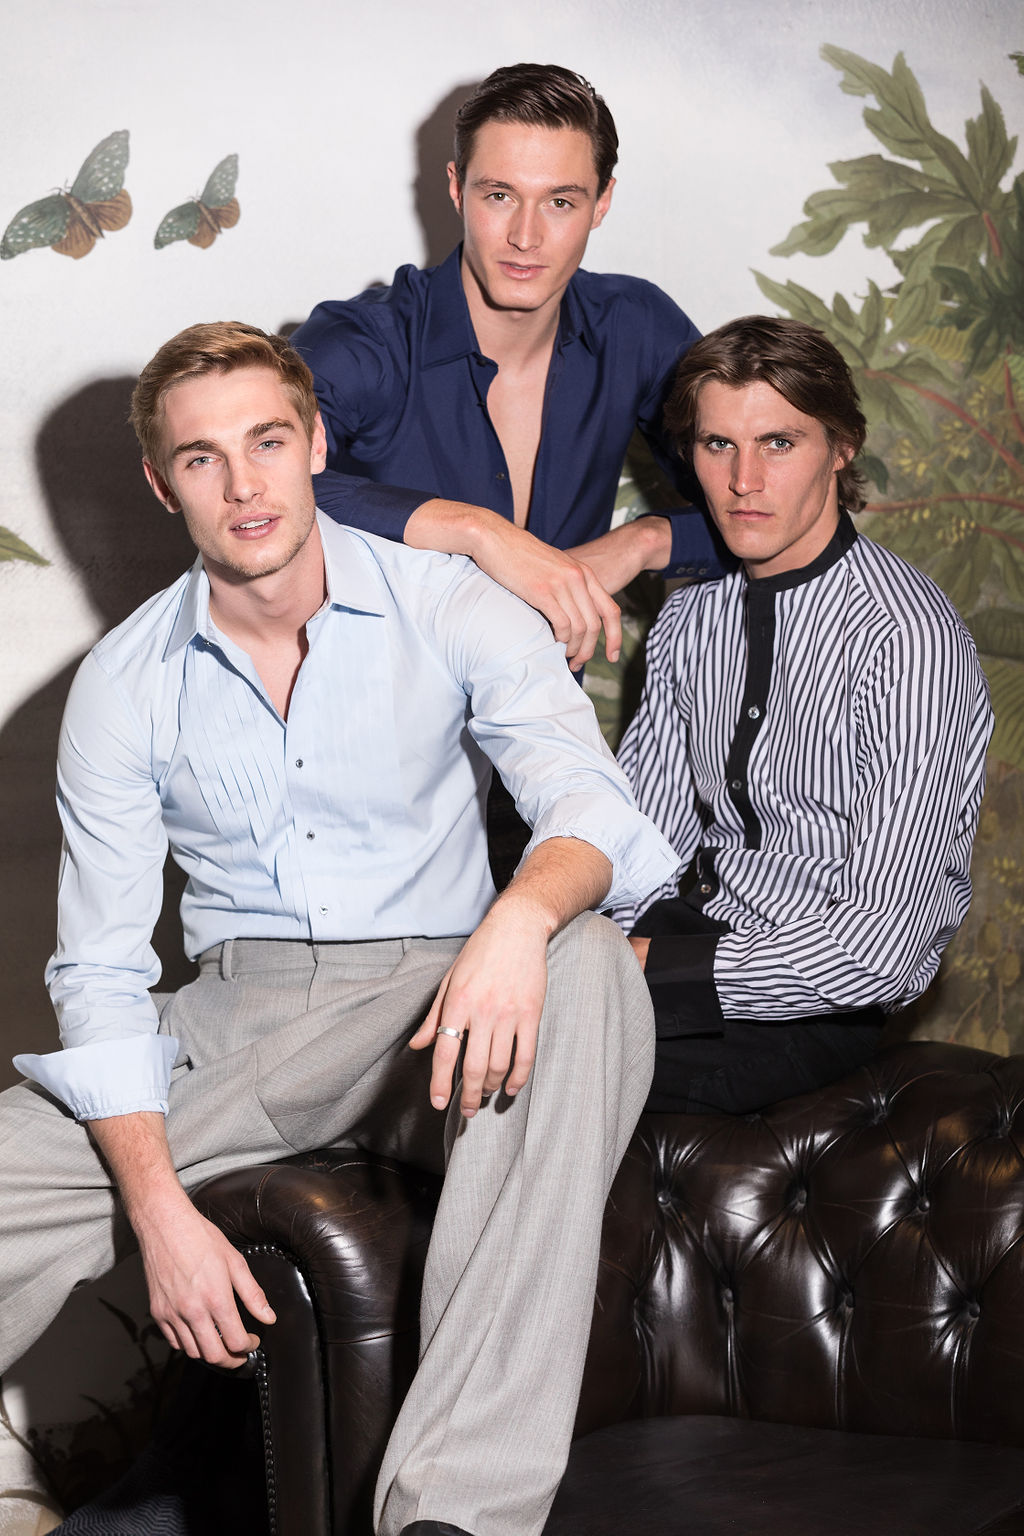 Tommy wears  Turnbull & Asser  shirt and  E Tautz  trousers, Huw wears  Turnbull & Asser  shirt and  Tailor Made London  trousers, Jack wears  Turnbull & Asser  shirt and his own jeans